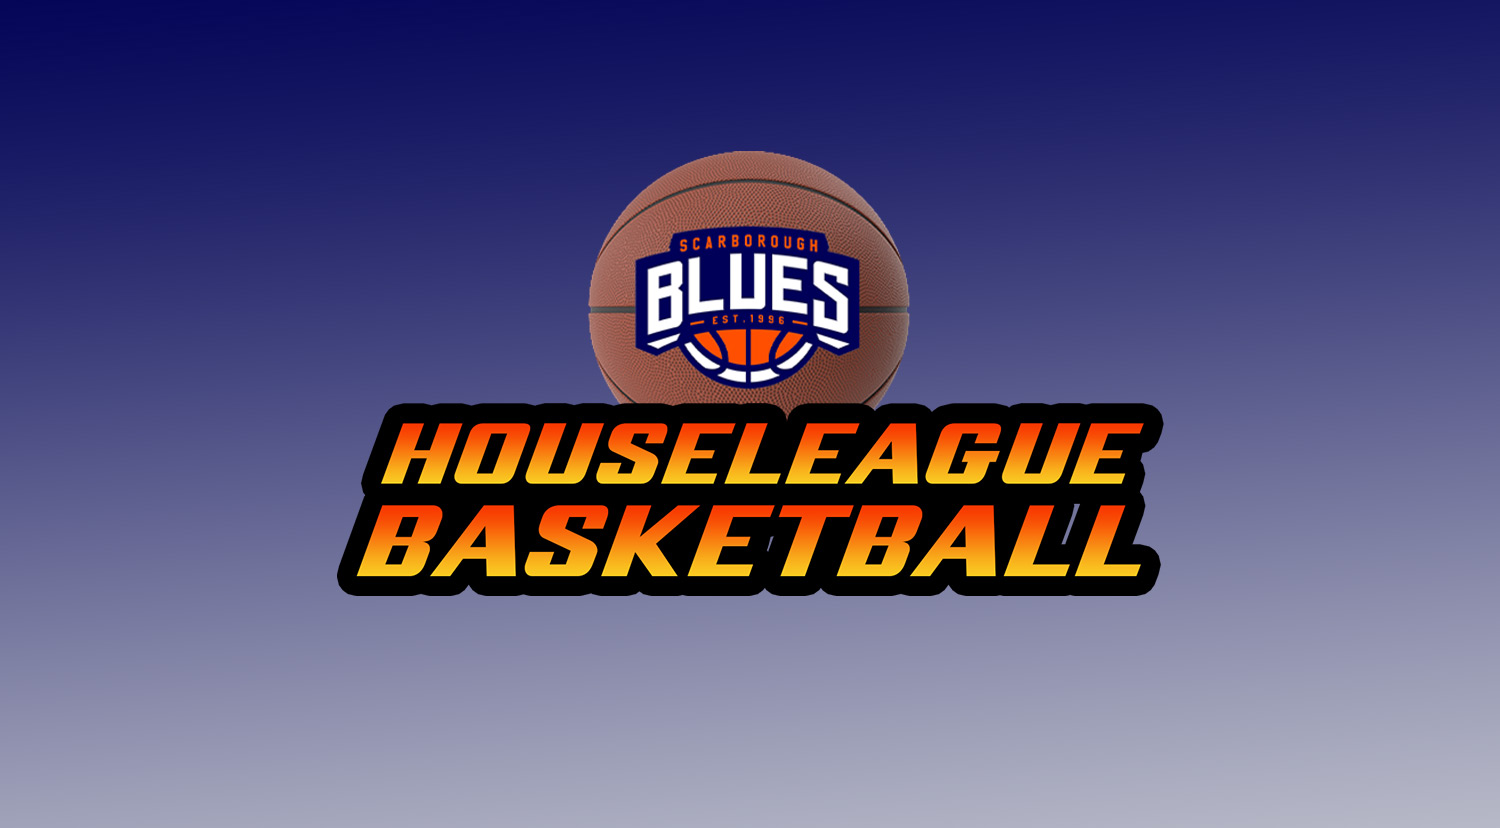 Scarborough Blues House League Basketball